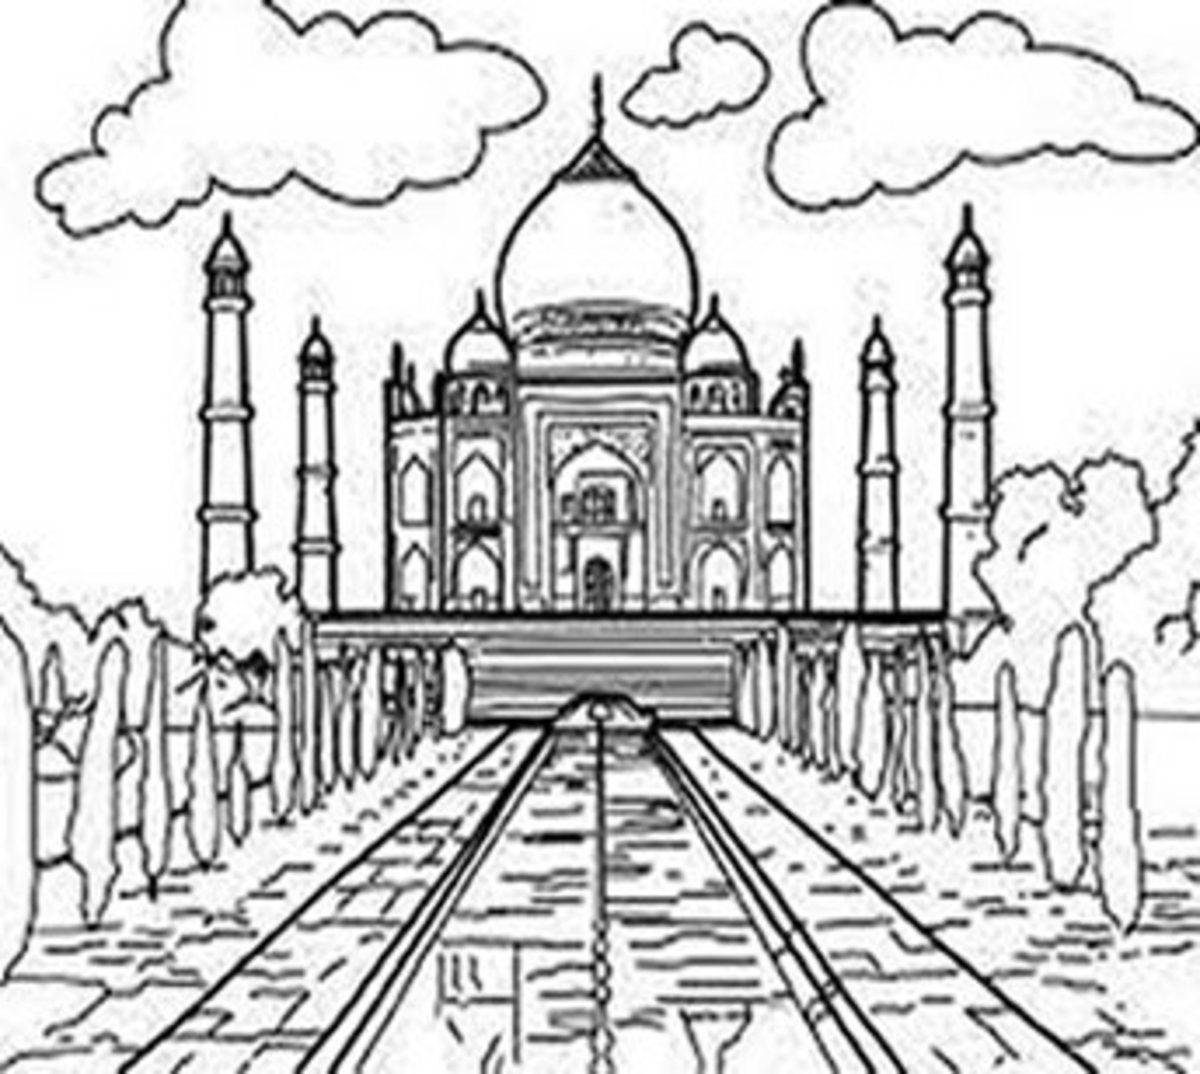 National Landmark Coloring Pages - Historic Tourist Attractions - Taj Mahal - India